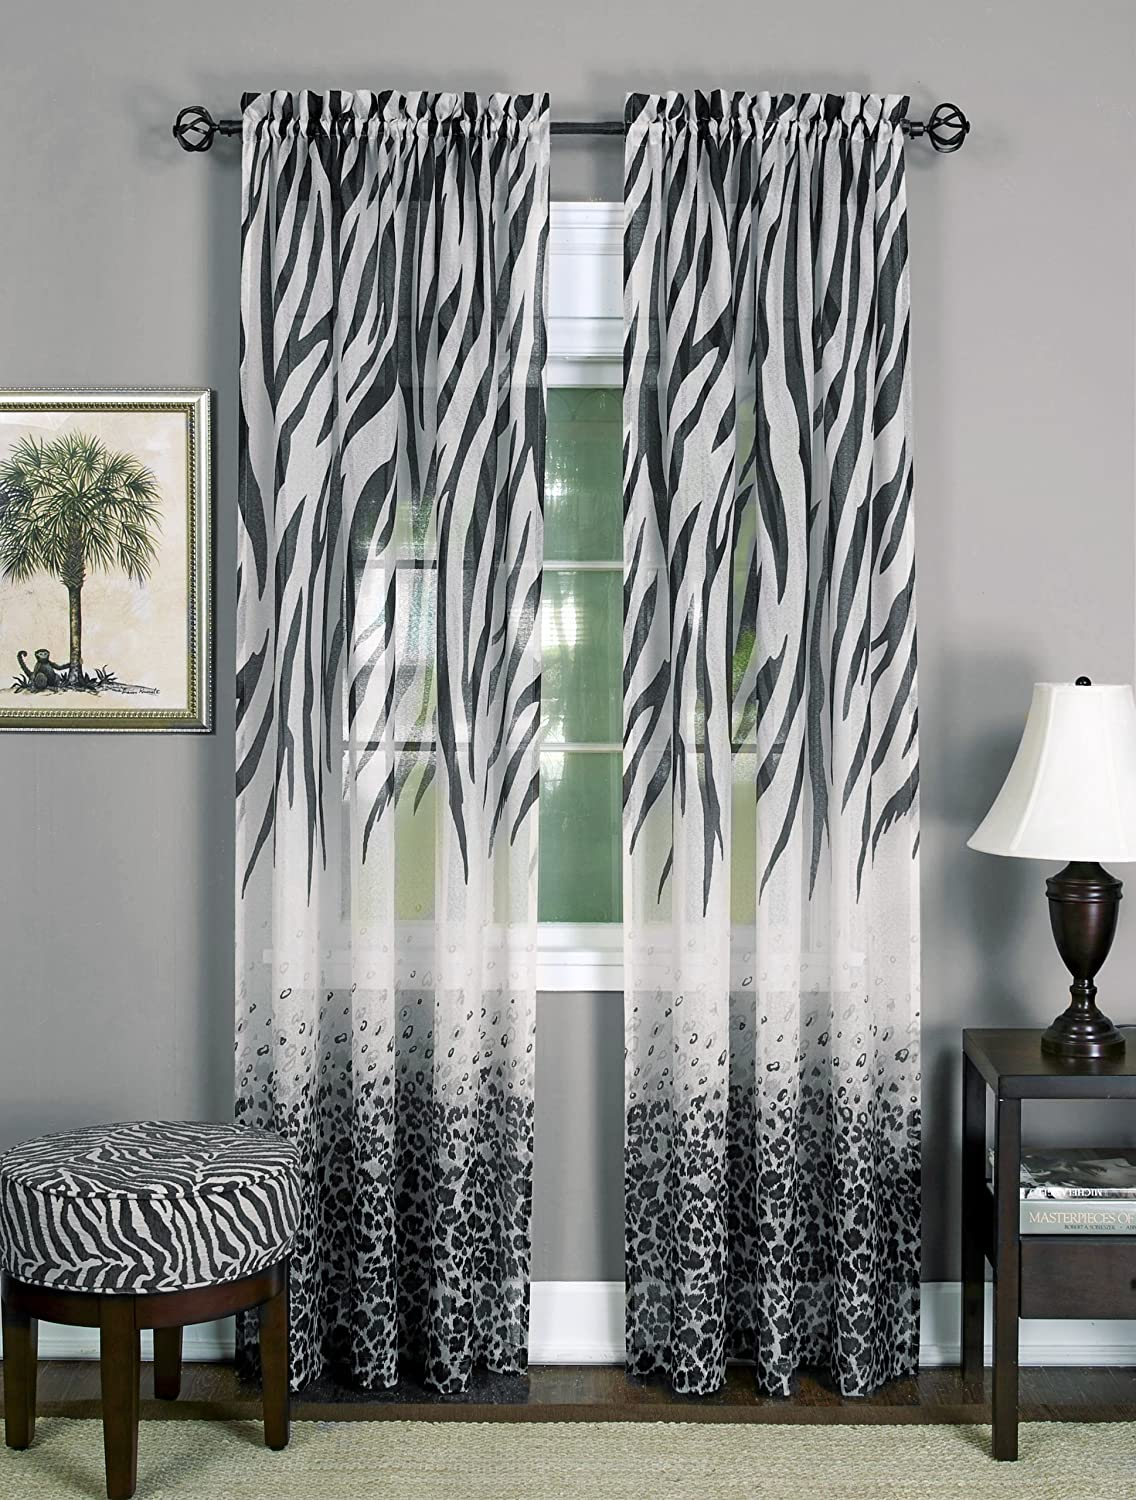 Achim Home Furnishings Kenya Window Curtain Panel, Black/White, 50 x 84-Inch